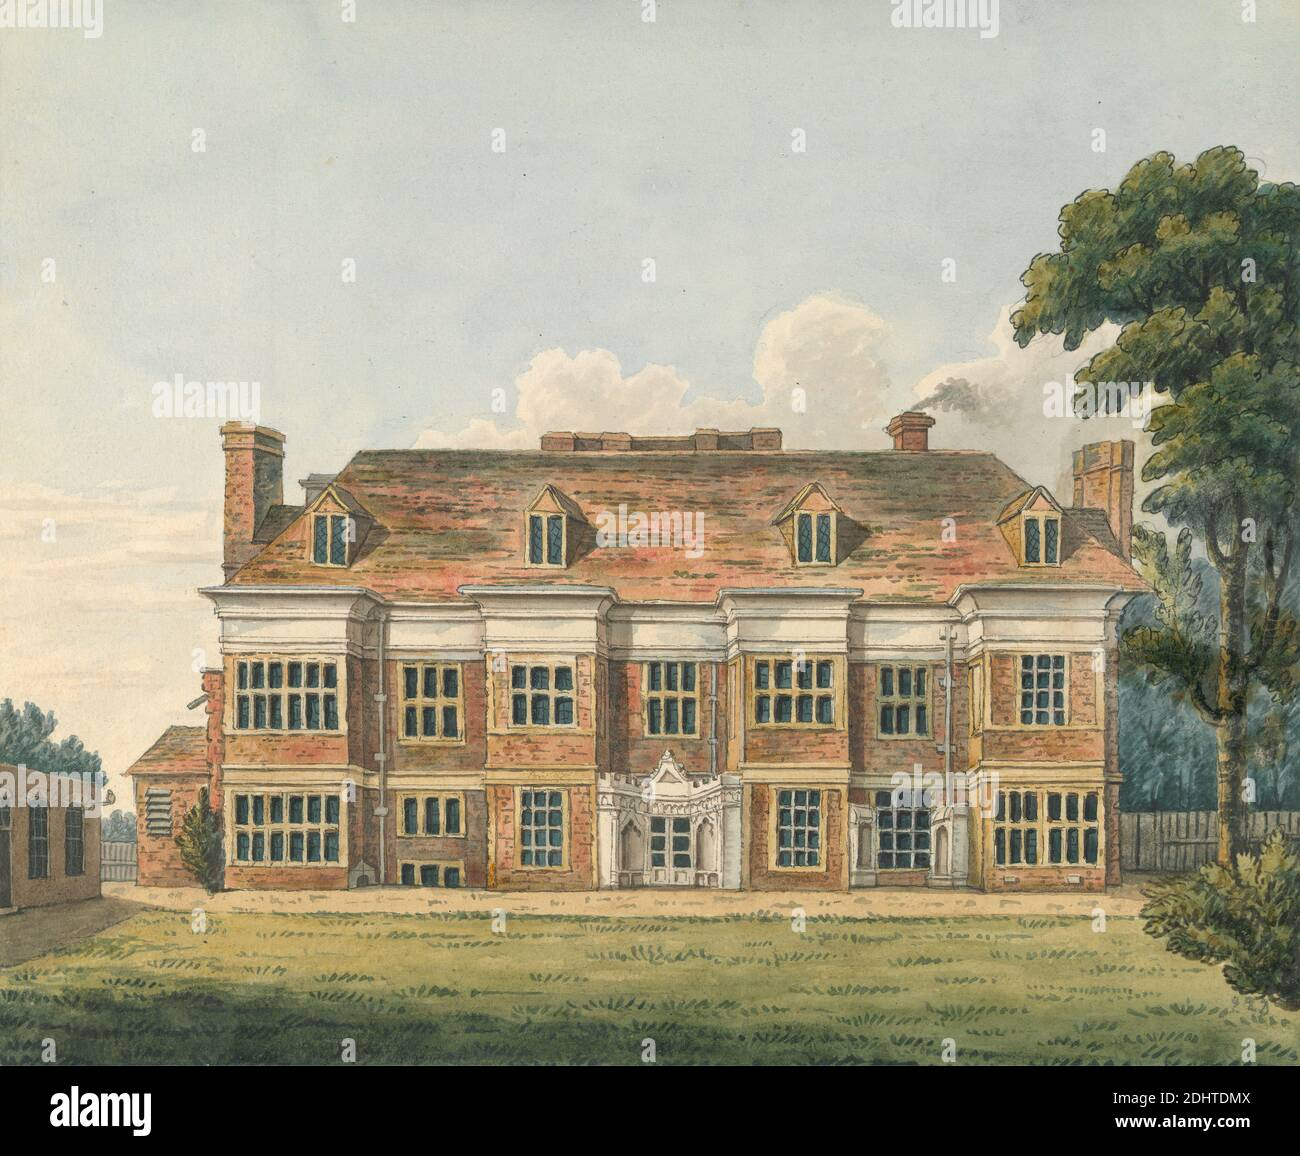 Ealing House, Middlesex, Charles Tomkins, 1757–1823, British, undated, Pen and brown and black ink and watercolor over graphite on medium, smooth, white wove paper, Sheet: 6 7/8 × 8 1/8 inches (17.5 × 20.6 cm), architectural subject, exterior view, house, Ealing, England, Europe, Middlesex, United Kingdom Stock Photo